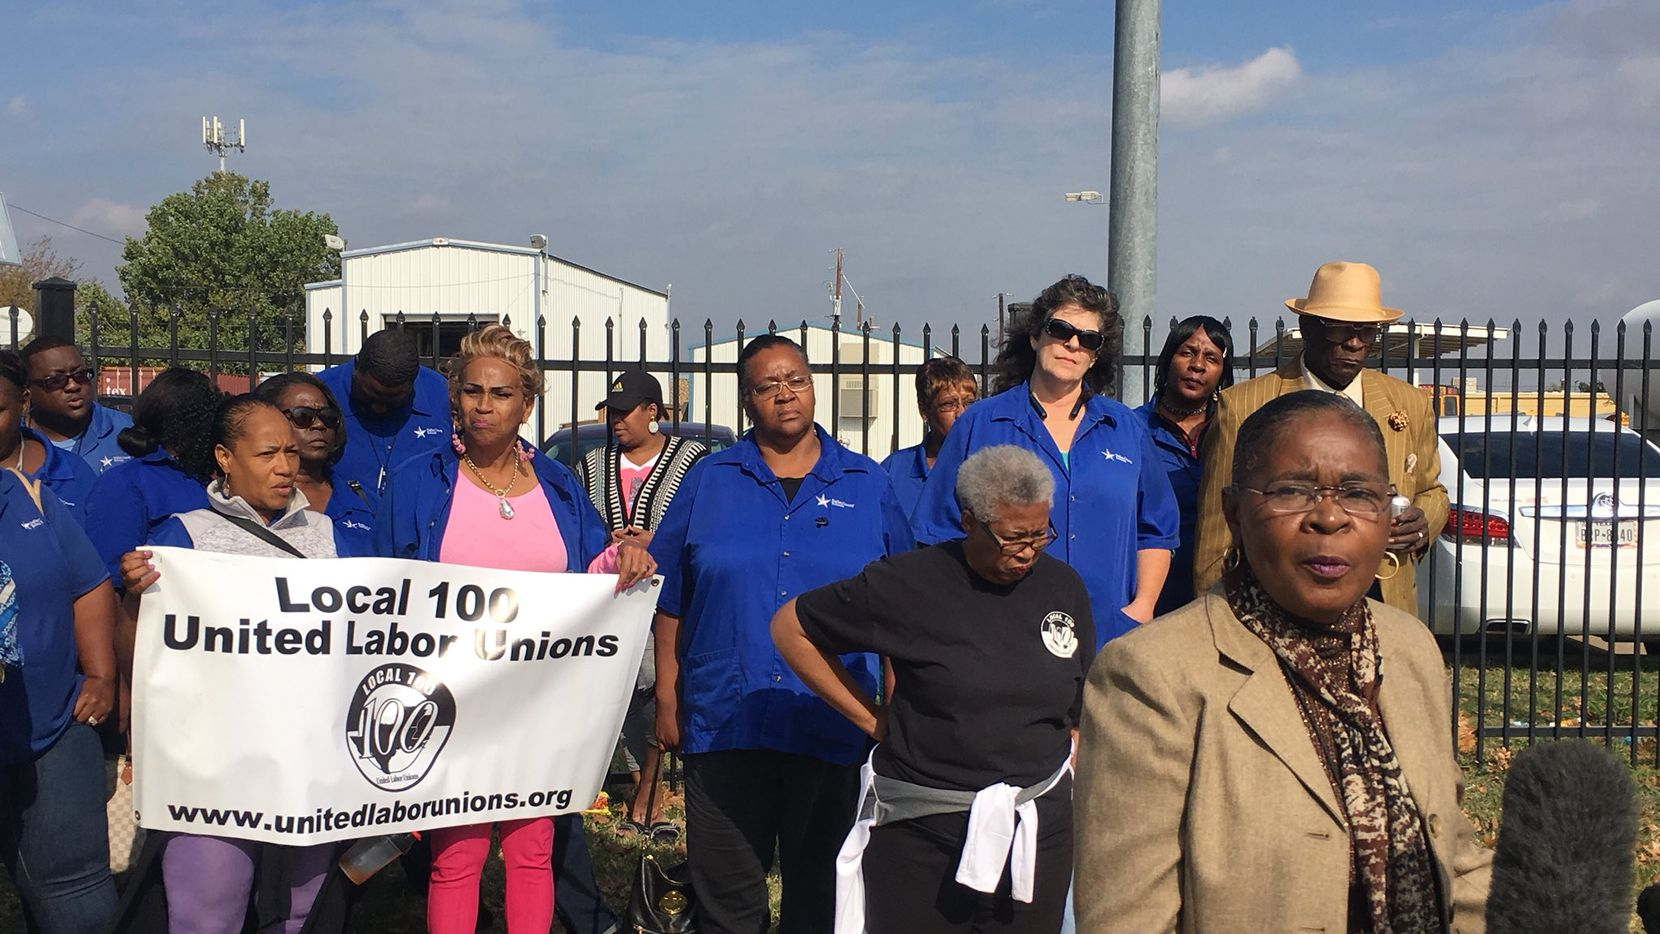 About a dozen Dallas County Schools bus drivers and their supporters attended a news conference Tuesday to air their concerns about the upcoming shutdown of the agency.